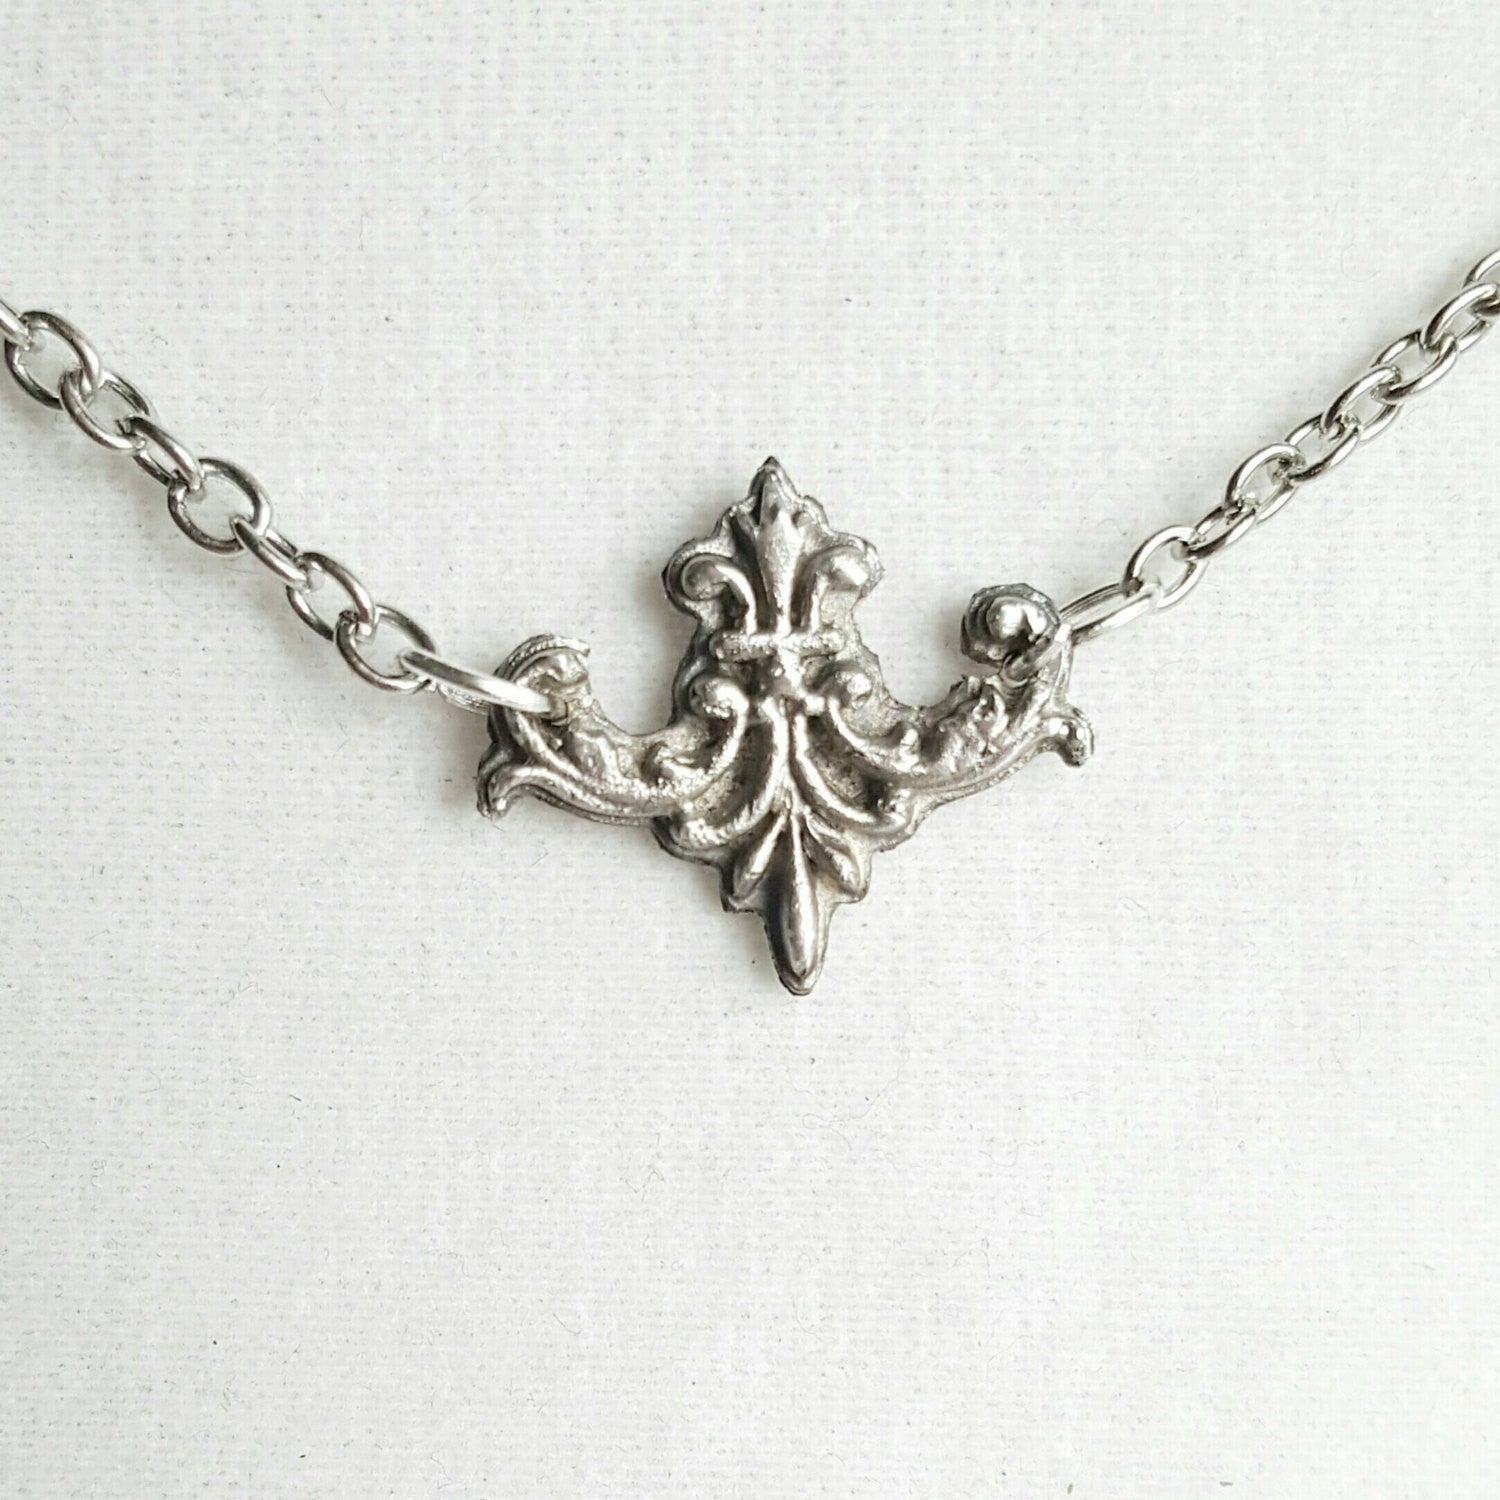 Victorian Necklace Architectural 925 Sterling Silver Jewelry - DRAVYNMOOR